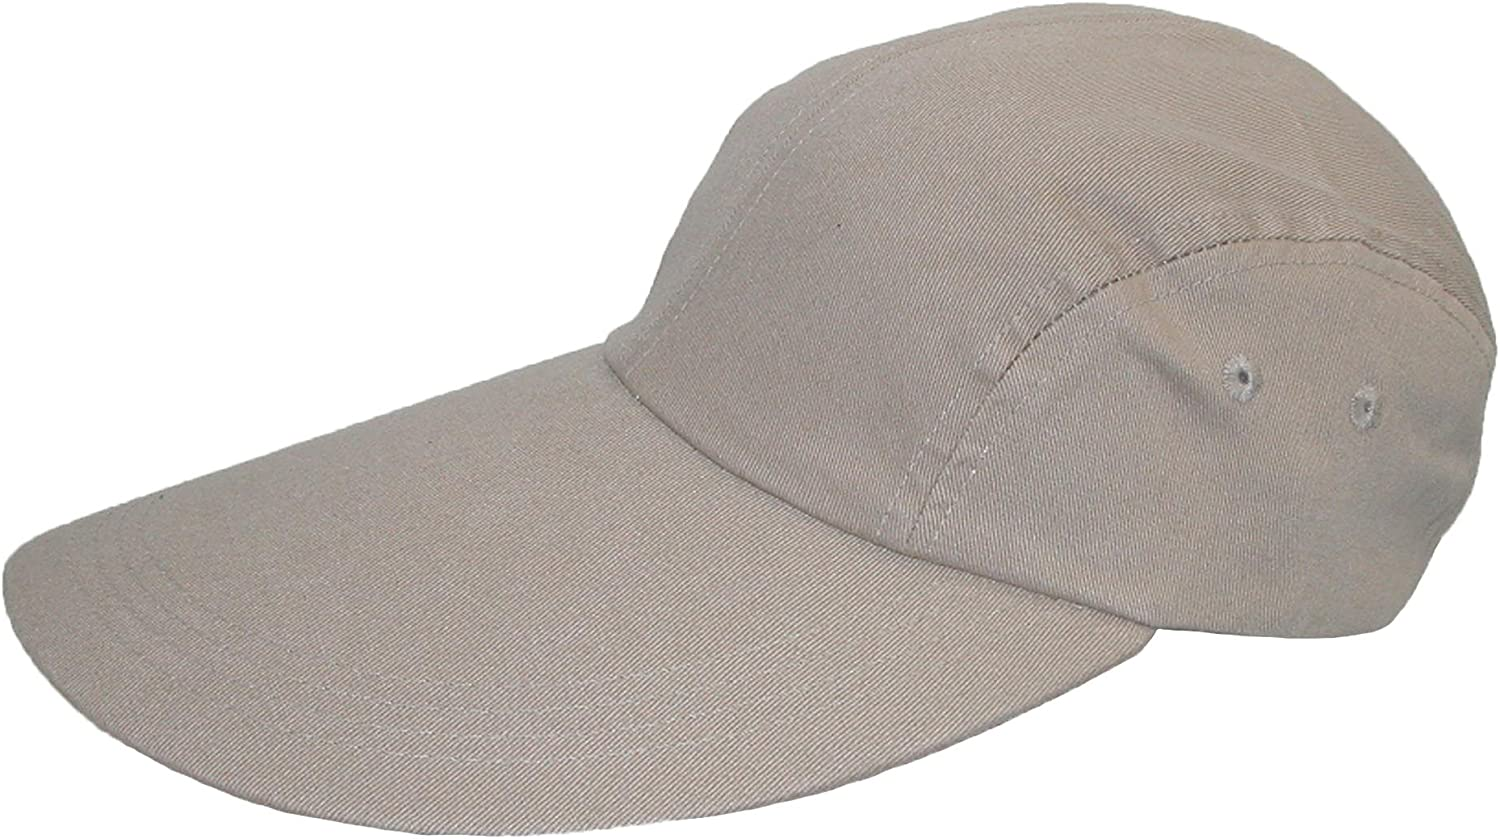 CareforYou/®Plain 100/% Cotton Men Women Baseball Cap/ Hat Sunbuster Long Bill Cap Velcro Solid Color Adjustable